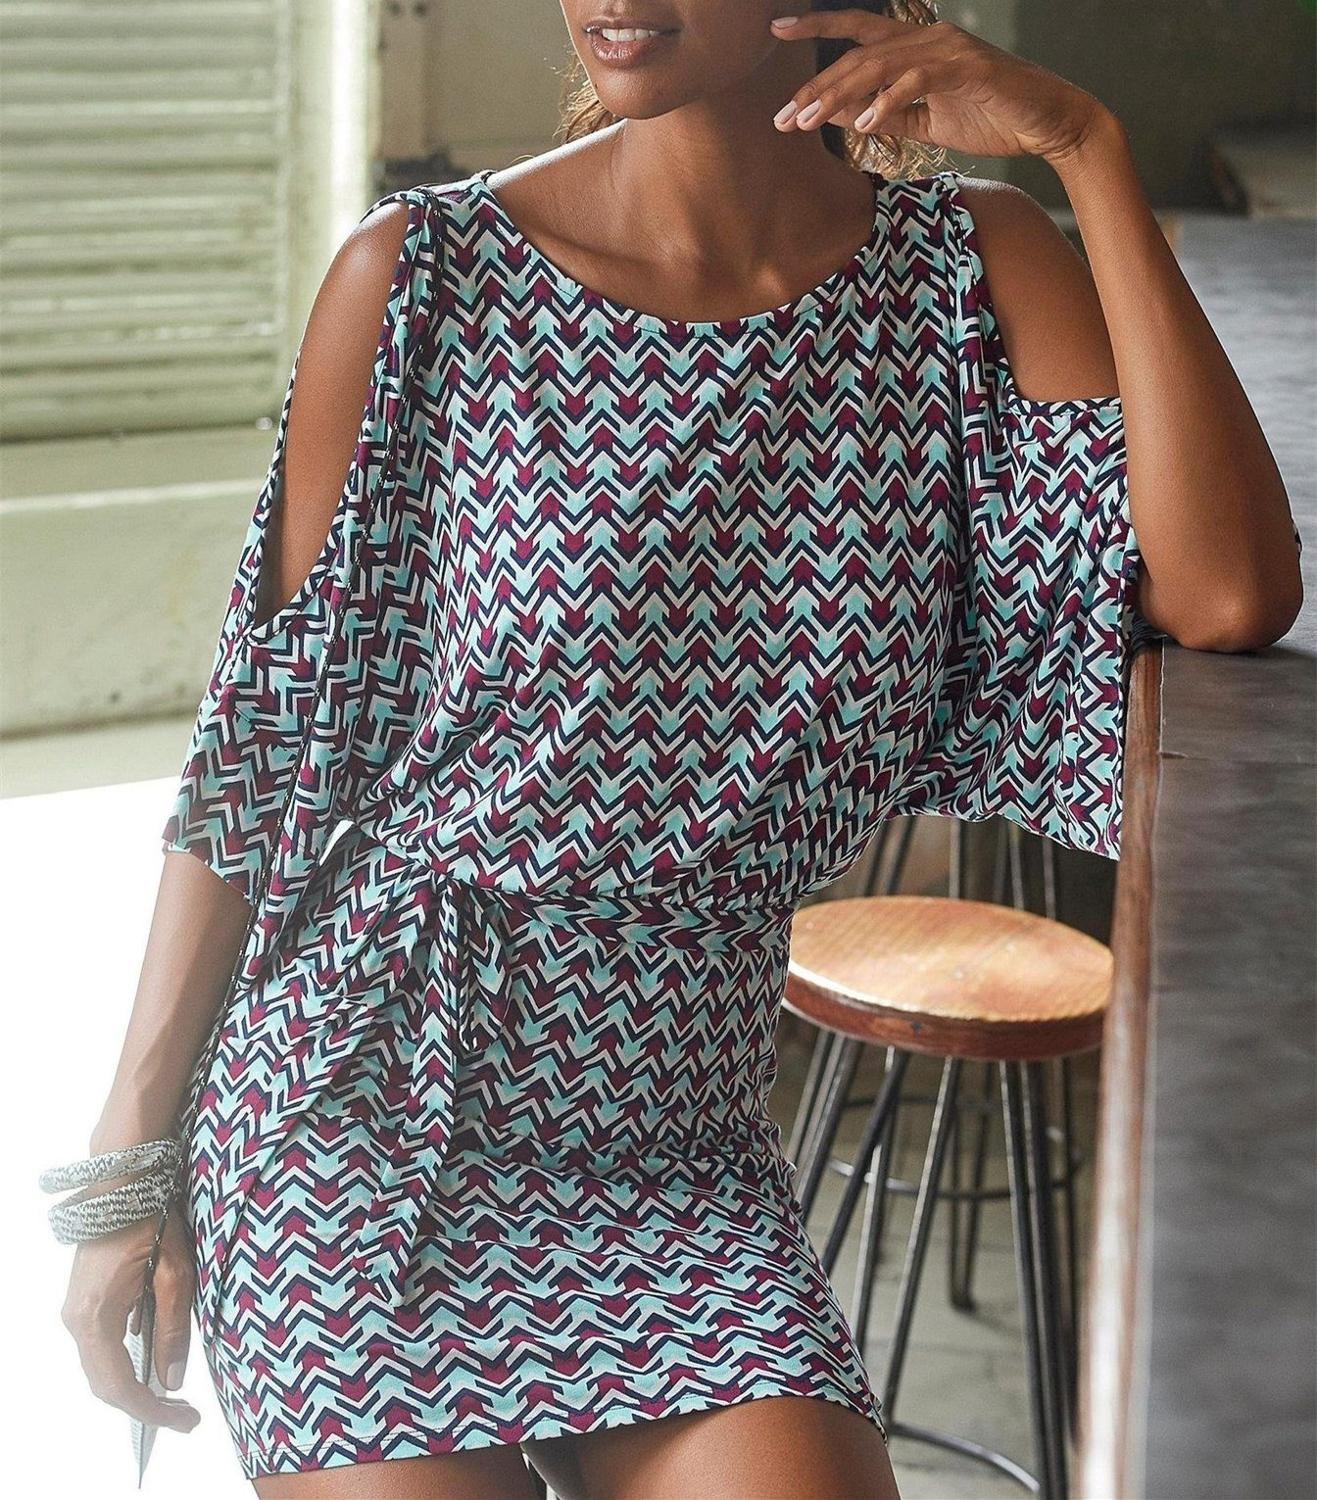 Summer Print Casual Dresses Women Beach Style Vestido O-Neck Sashes Batwing Hollow Out Sleeve Sexy Sheath Bodycon Mini Dress